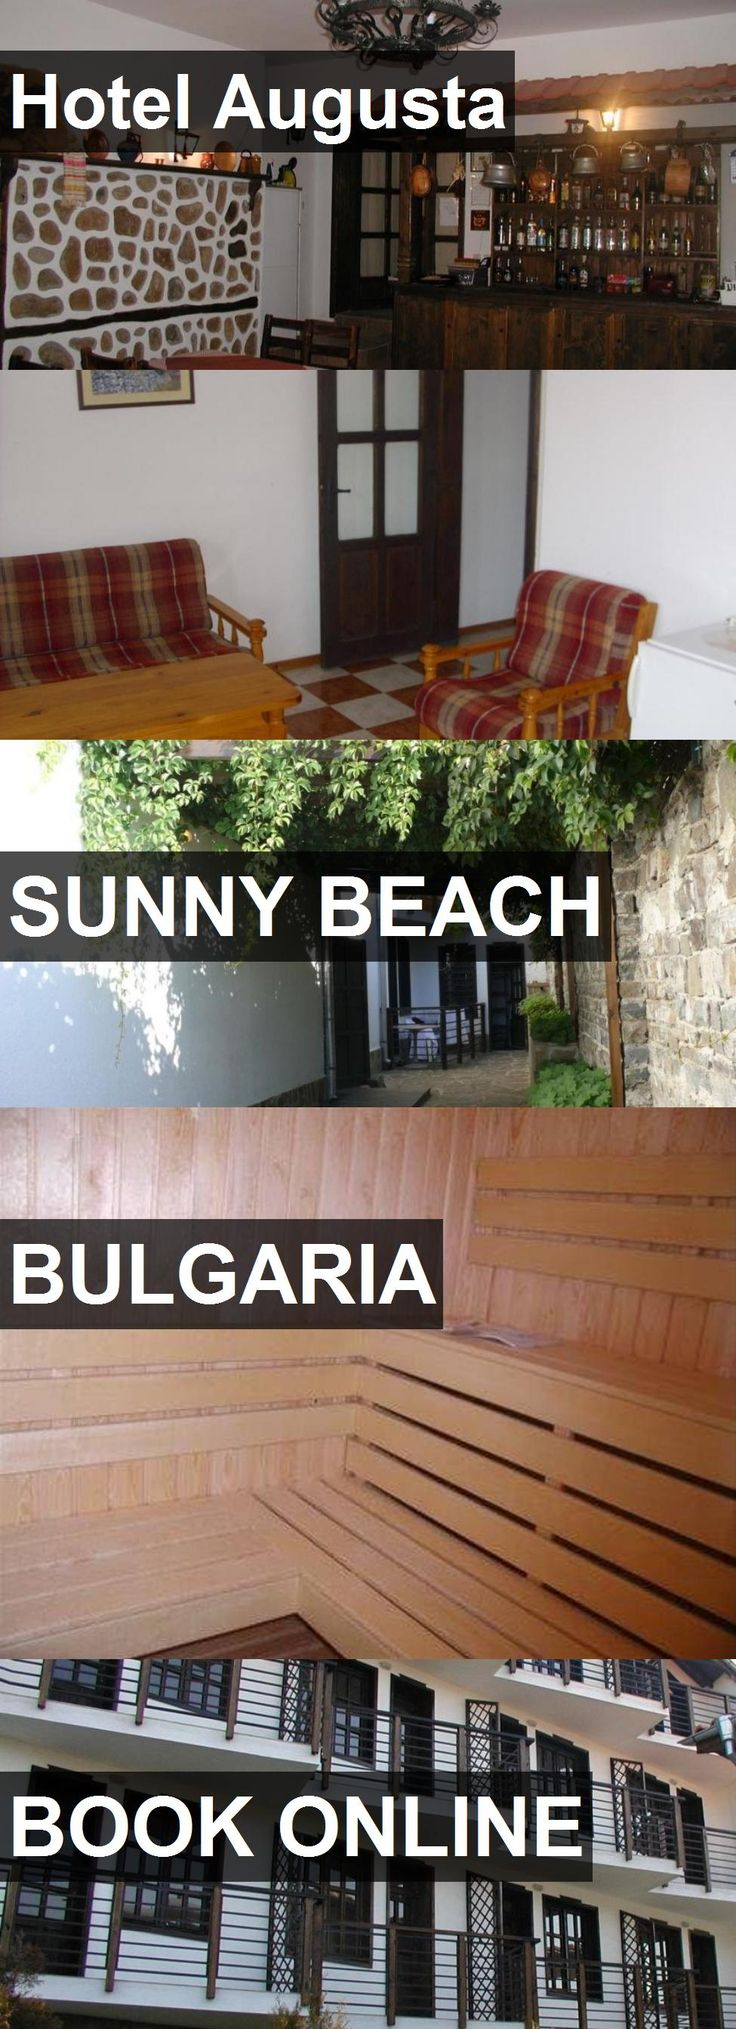 Hotel Hotel Augusta in Sunny Beach, Bulgaria. For more information, photos, reviews and best prices please follow the link. #Bulgaria #SunnyBeach #HotelAugusta #hotel #travel #vacation